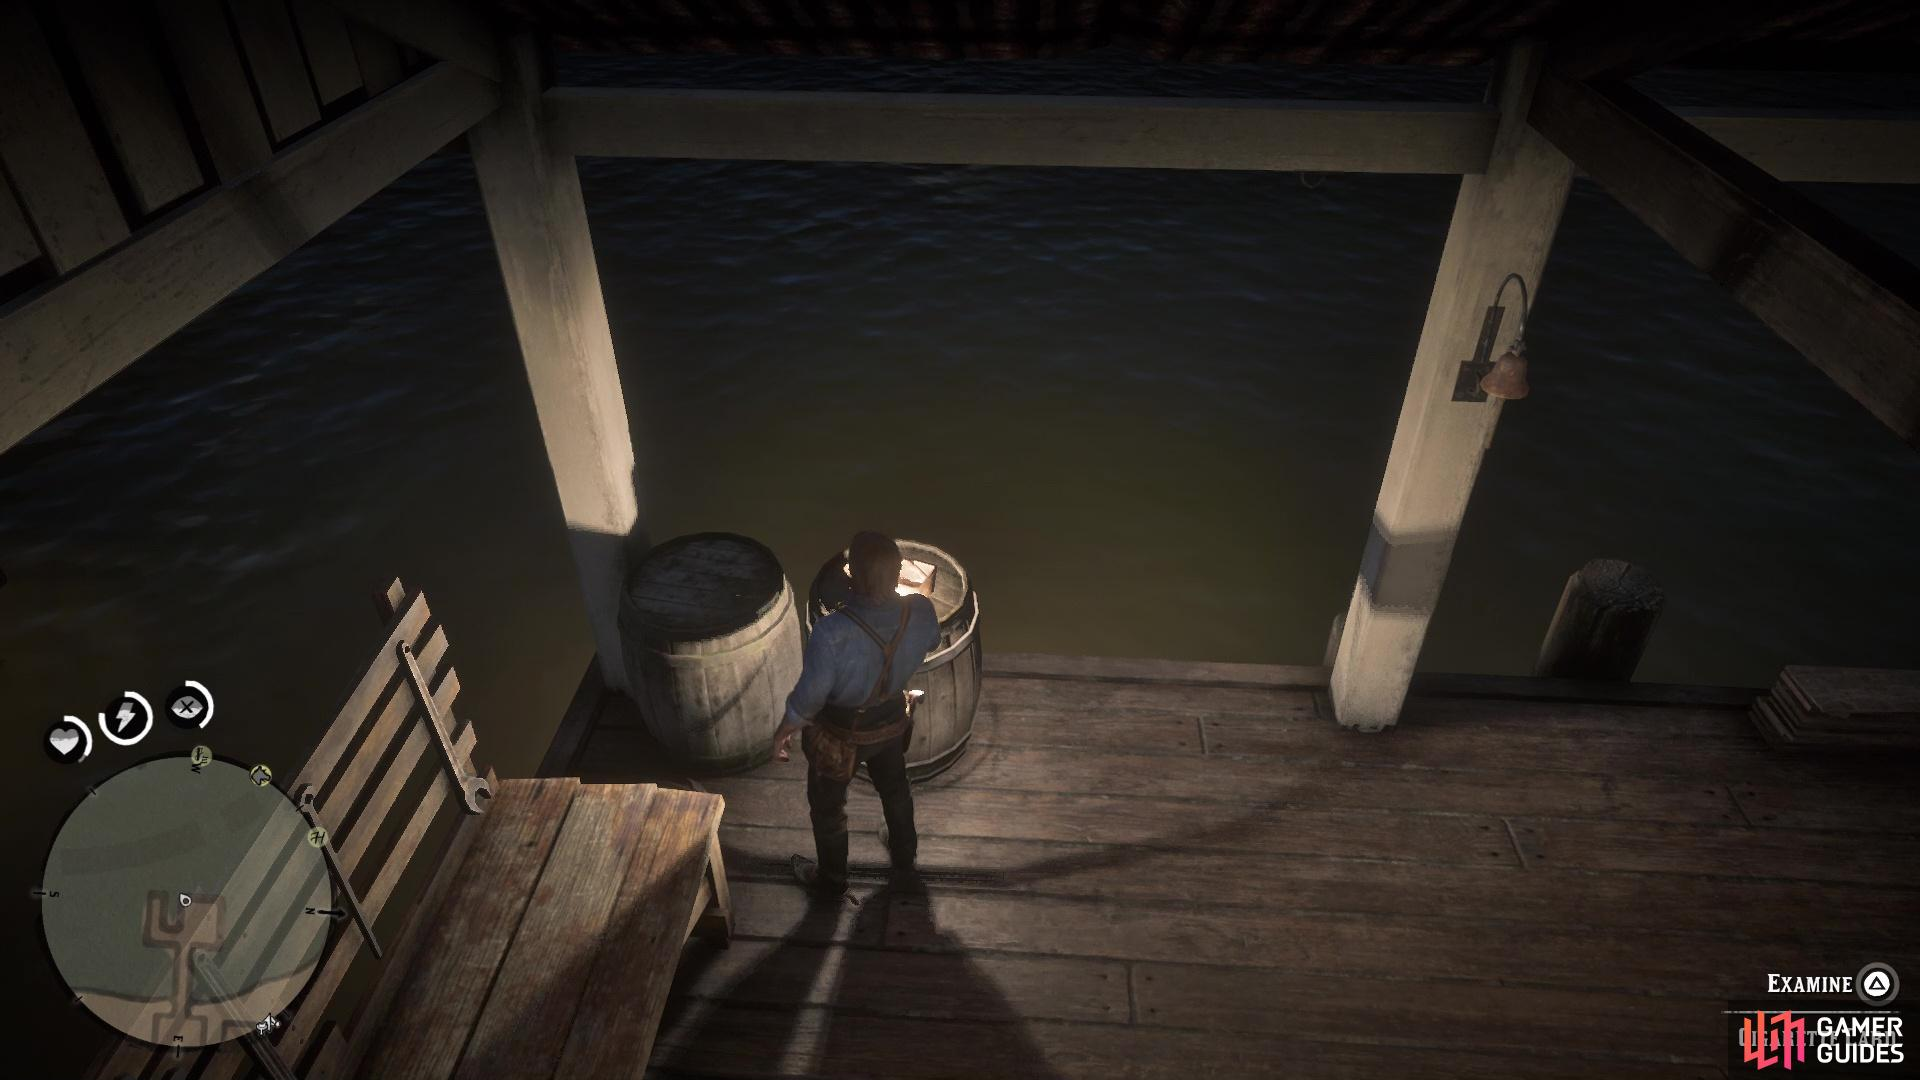 It will be found on the barrel at the end of the dock